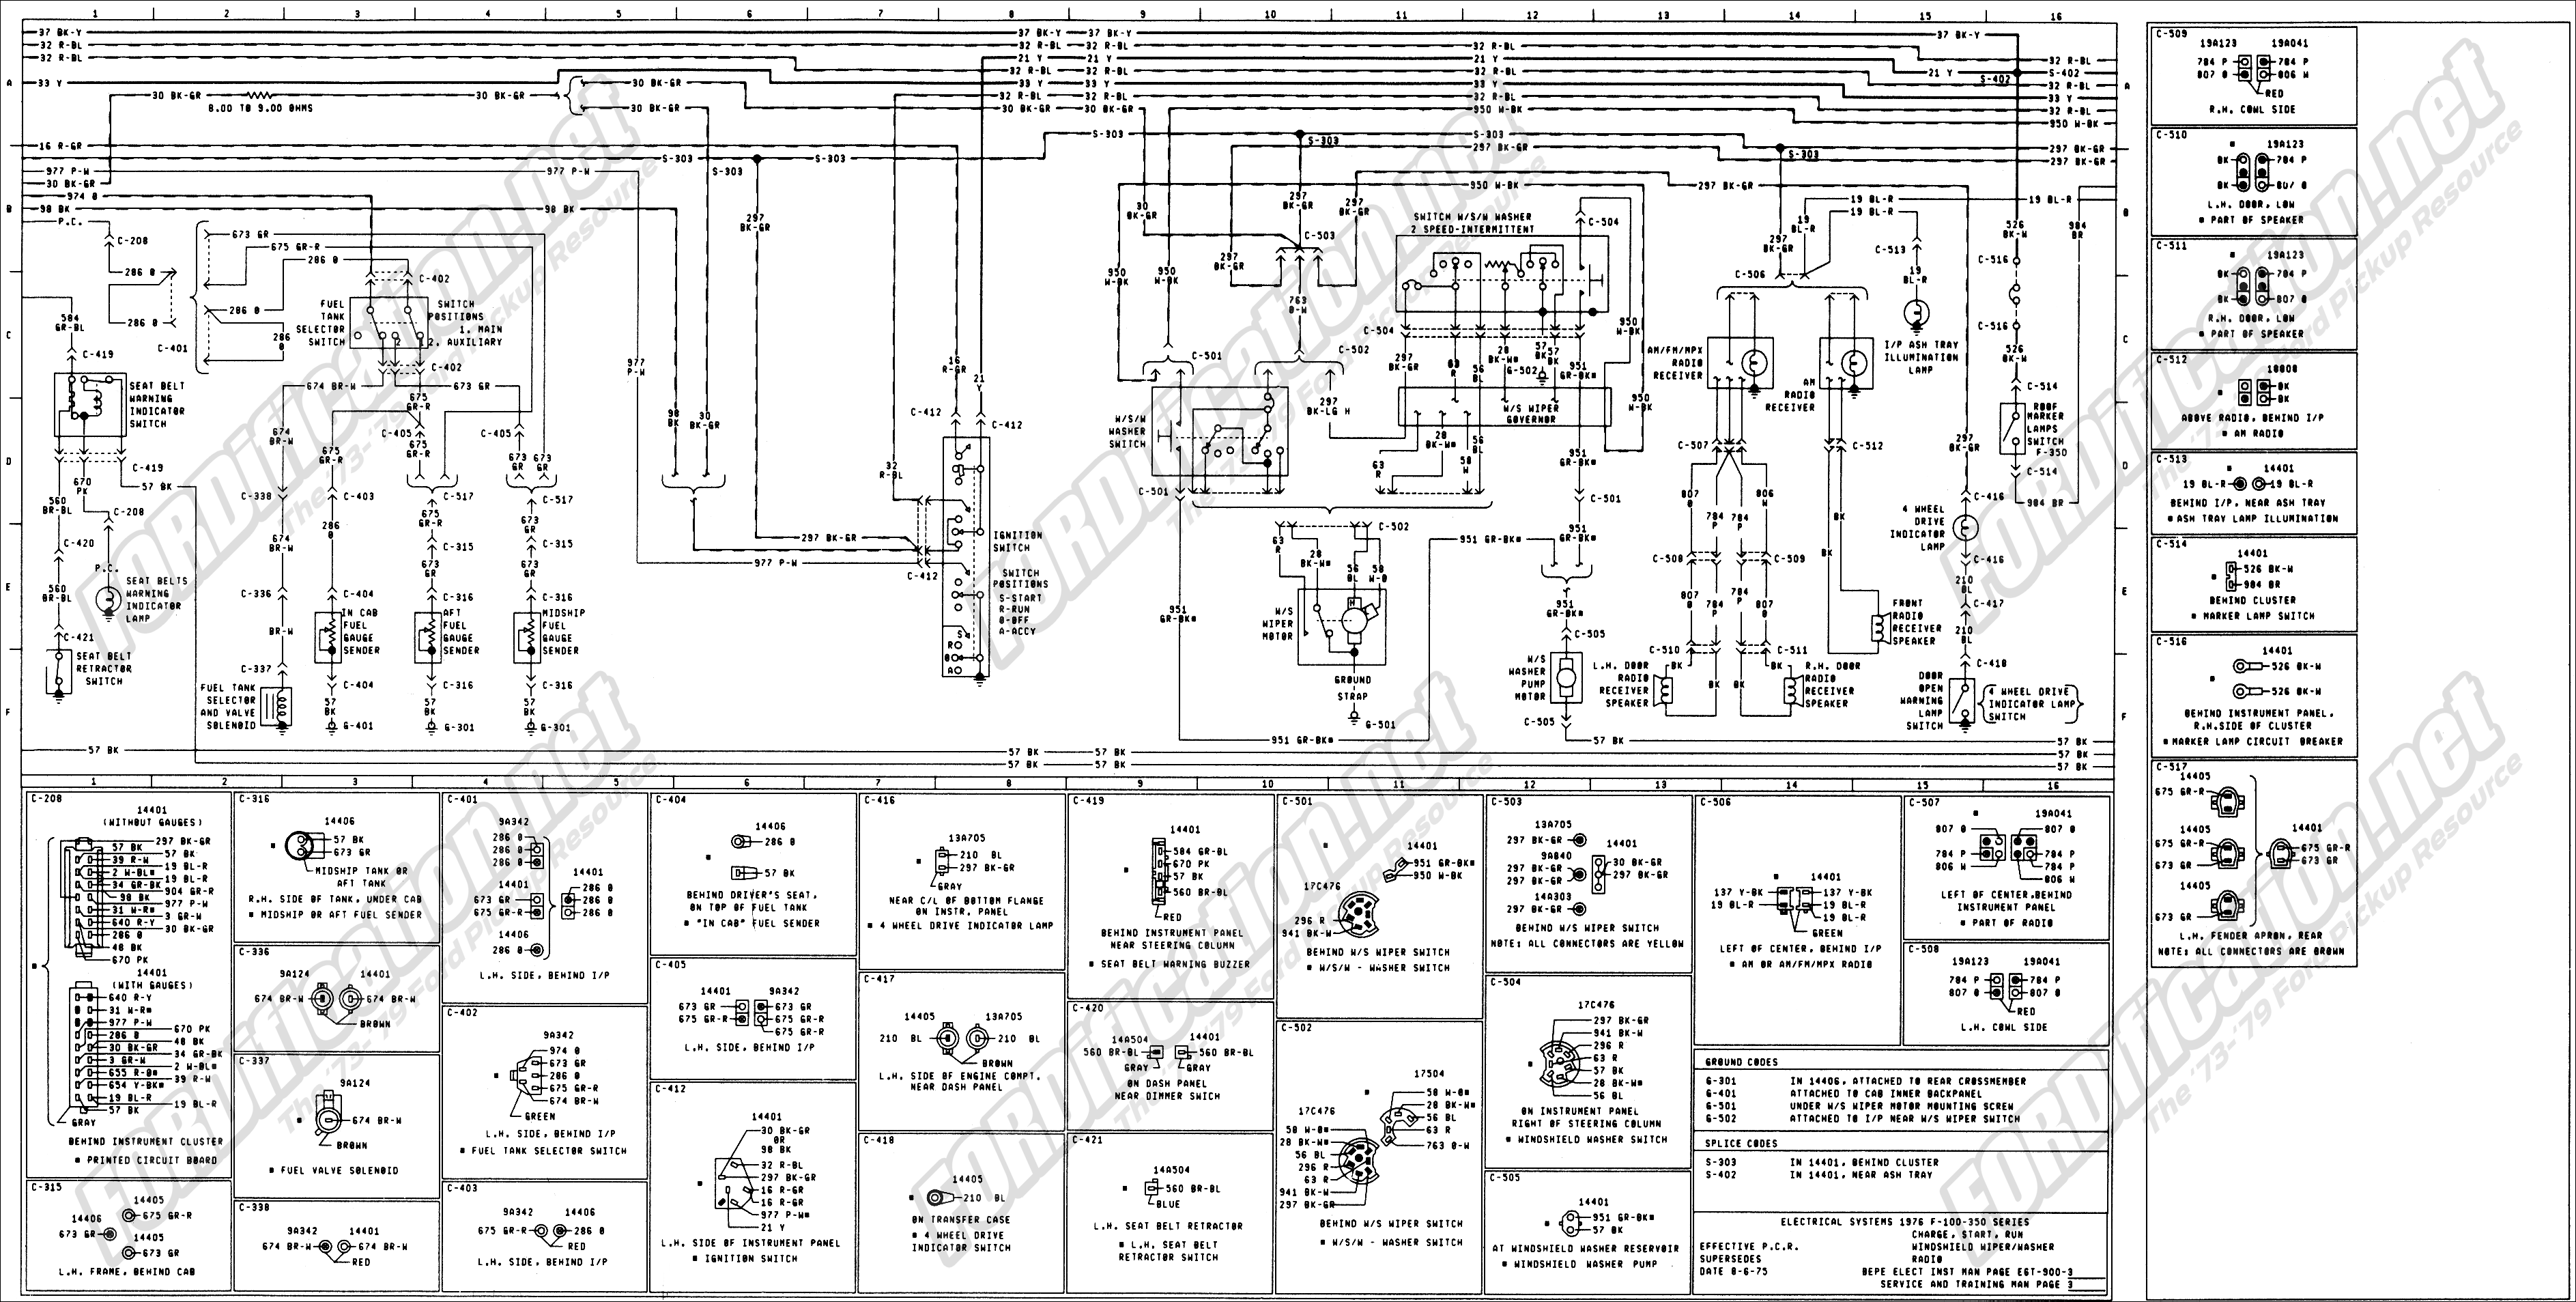 2002 F150 Dash Wiring Schematic Electrical Diagrams 2007 Honda Civic 1973 1979 Ford Truck Schematics Fordification Net F 150 Instrument Panel Diagram